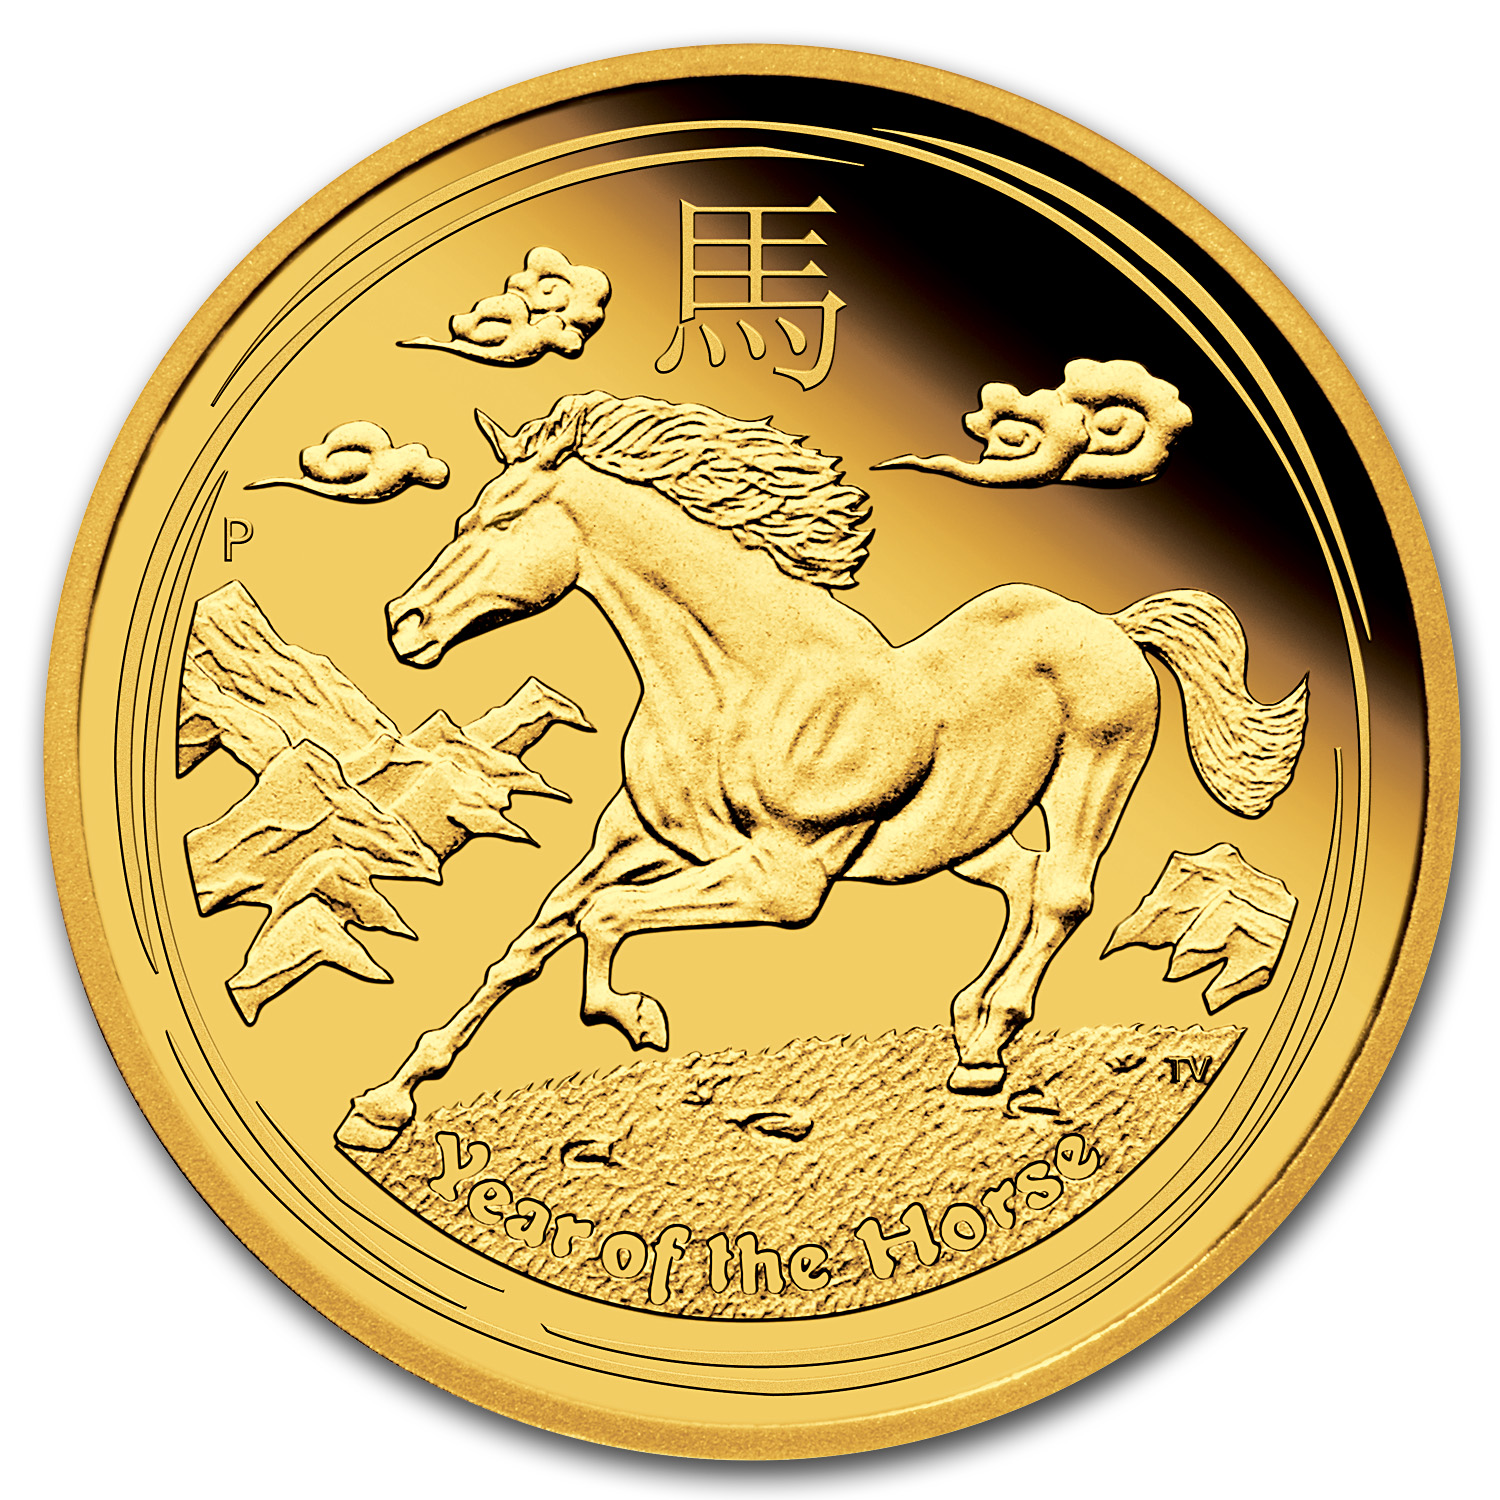 2014 1/4 oz Proof Gold Lunar Year of the Horse (Series II)